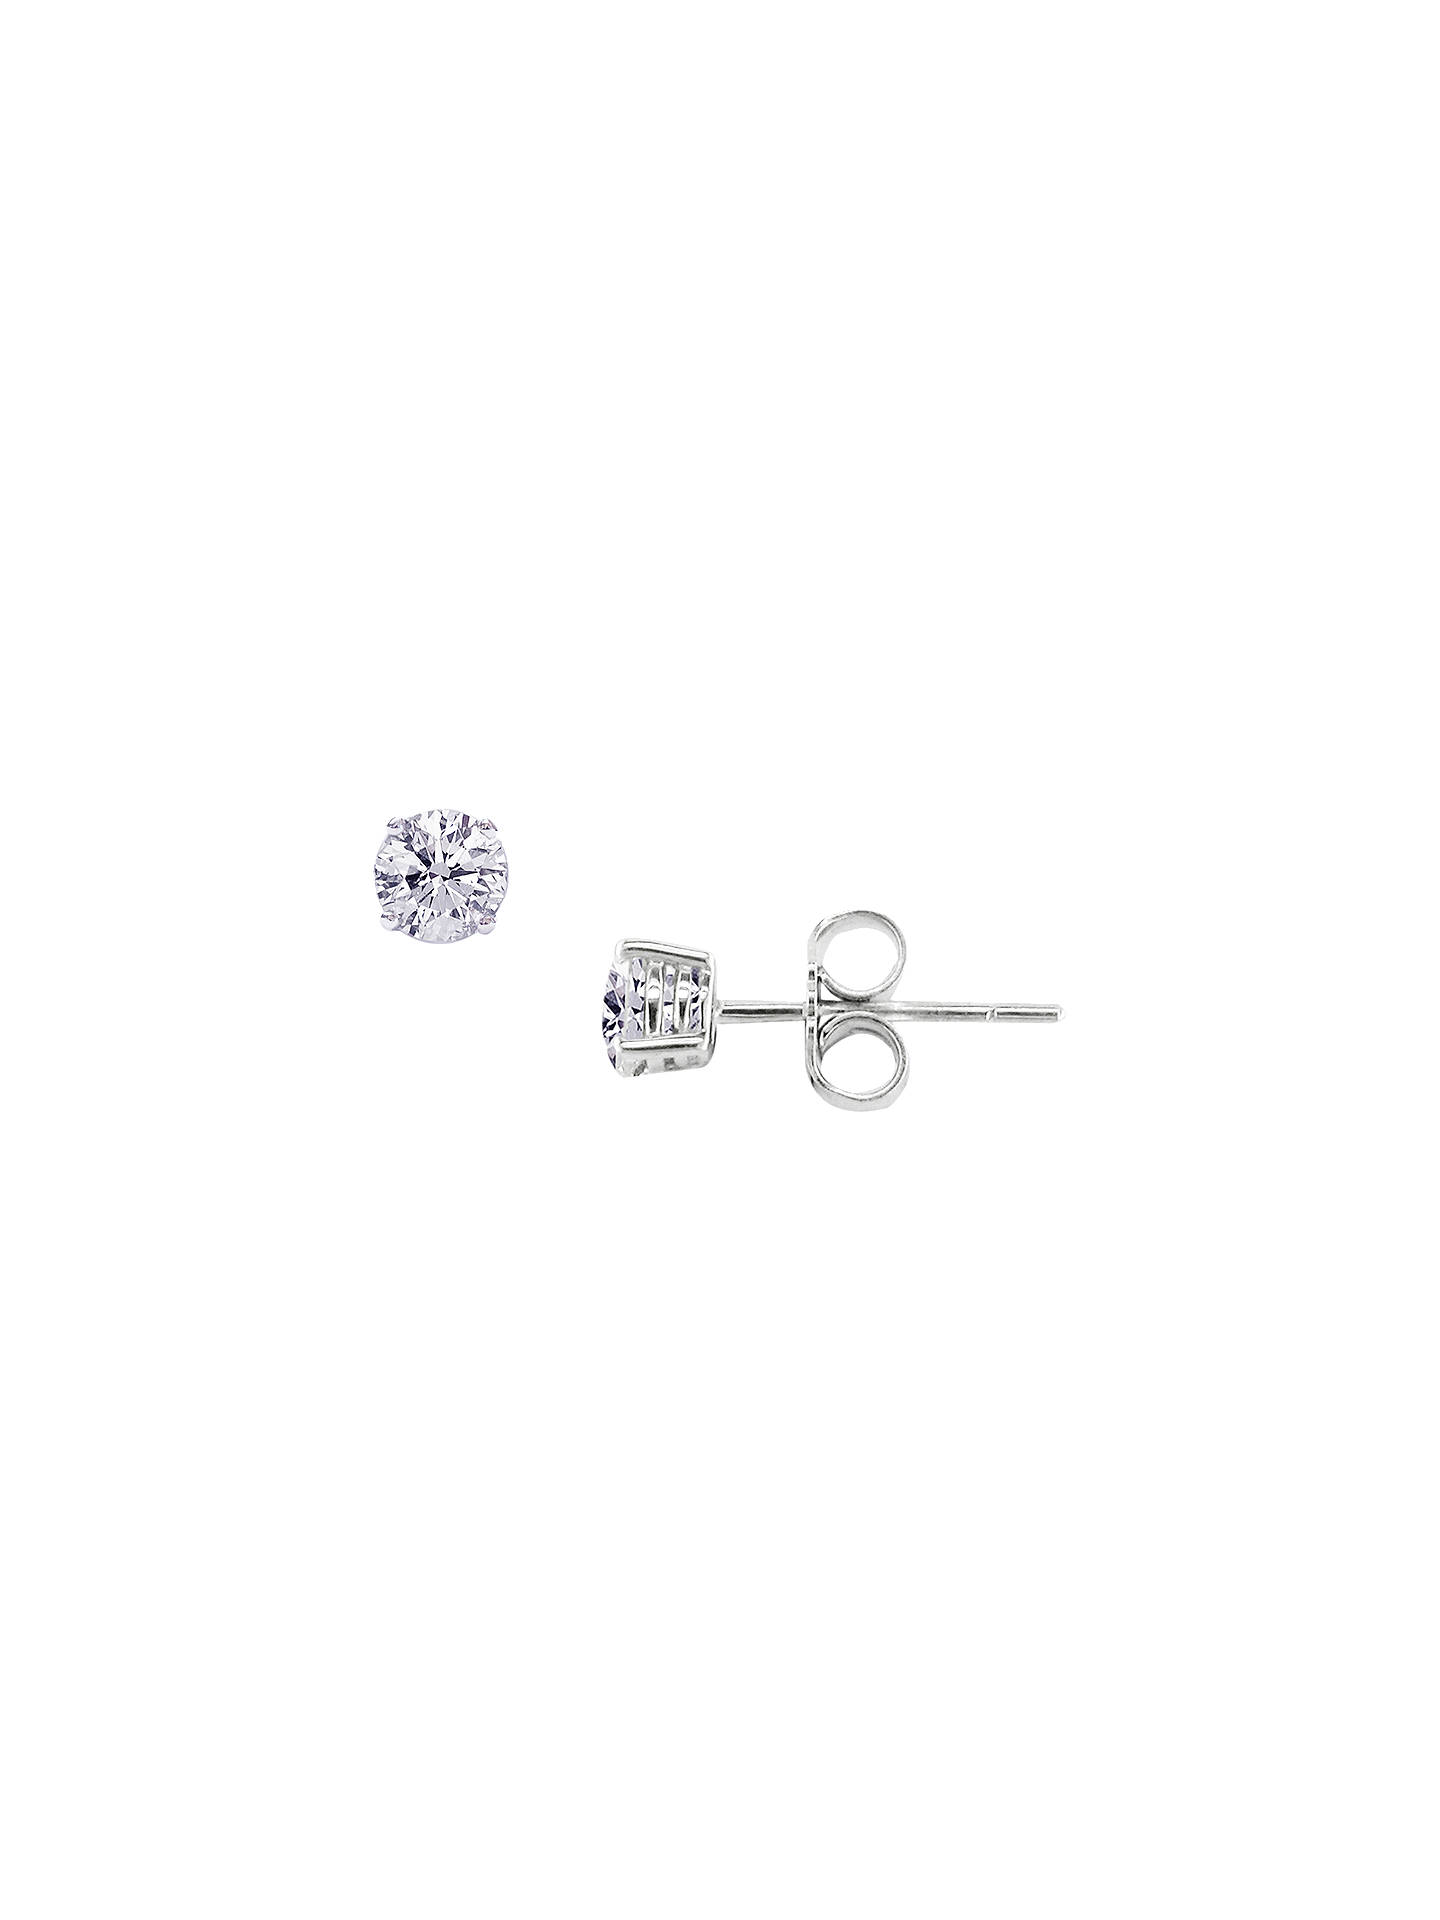 Ewa 18ct White Gold Diamond Stud Earrings Online At Johnlewis